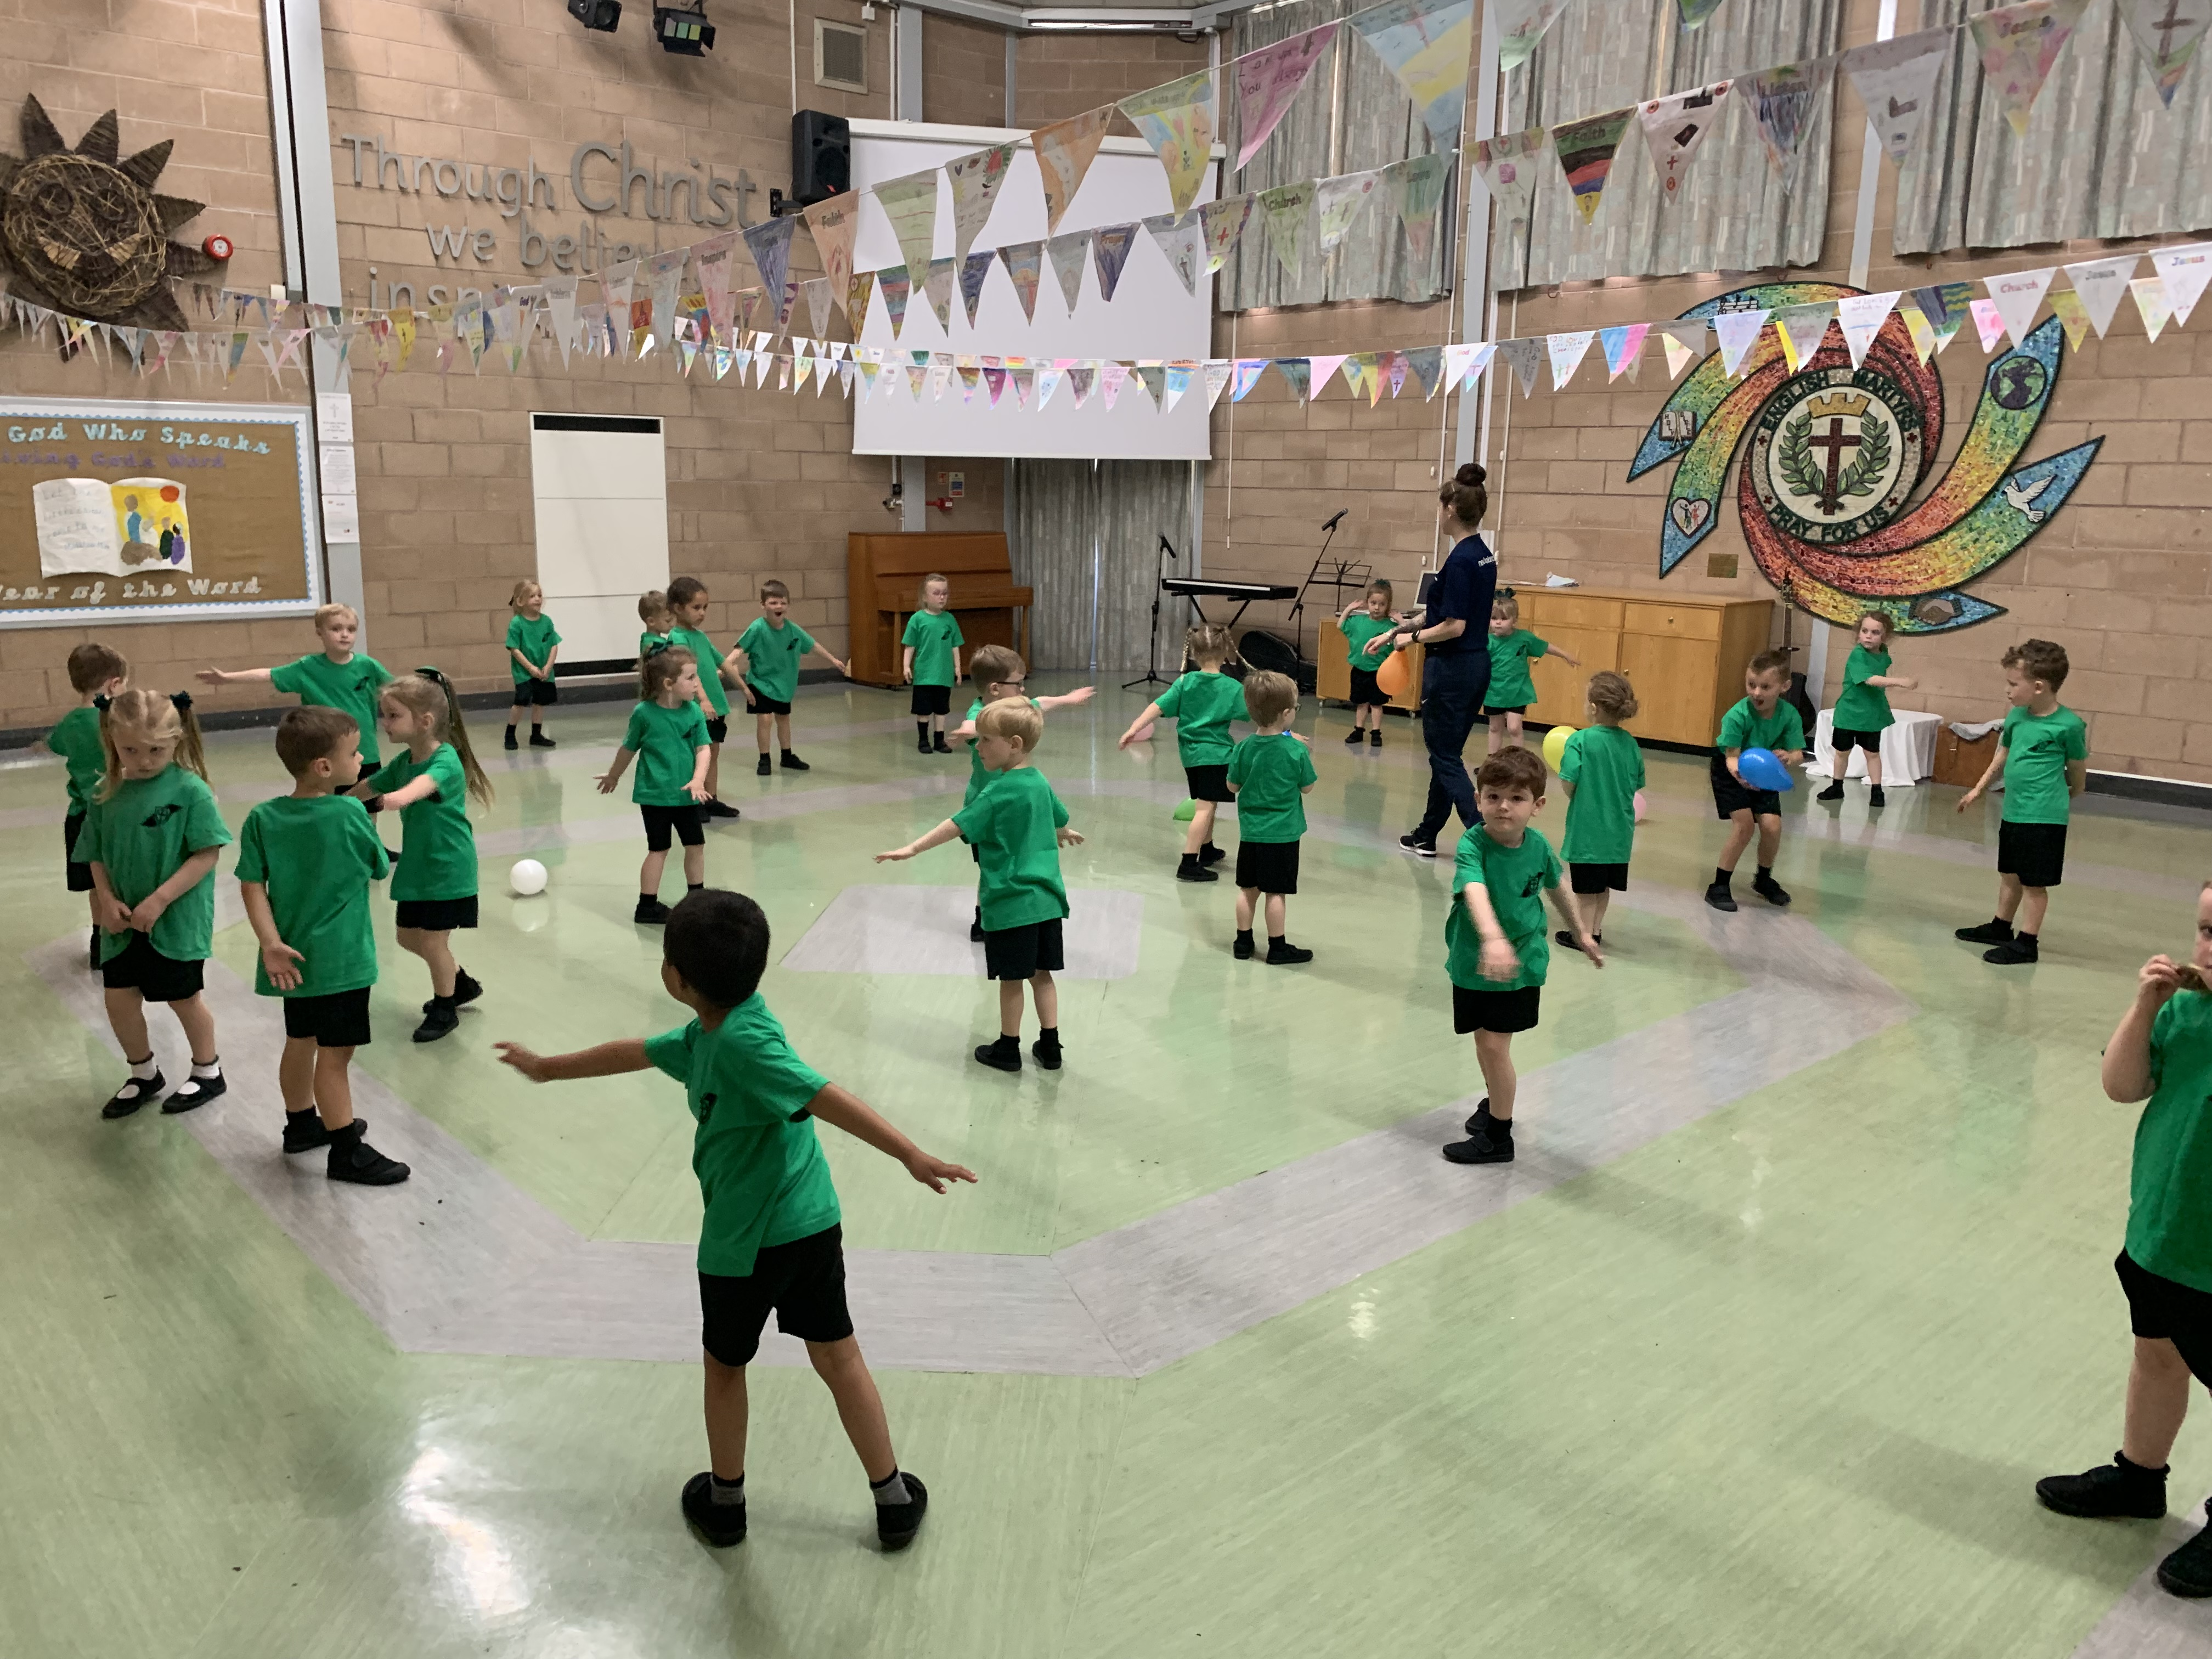 Reception love Keeping Active!